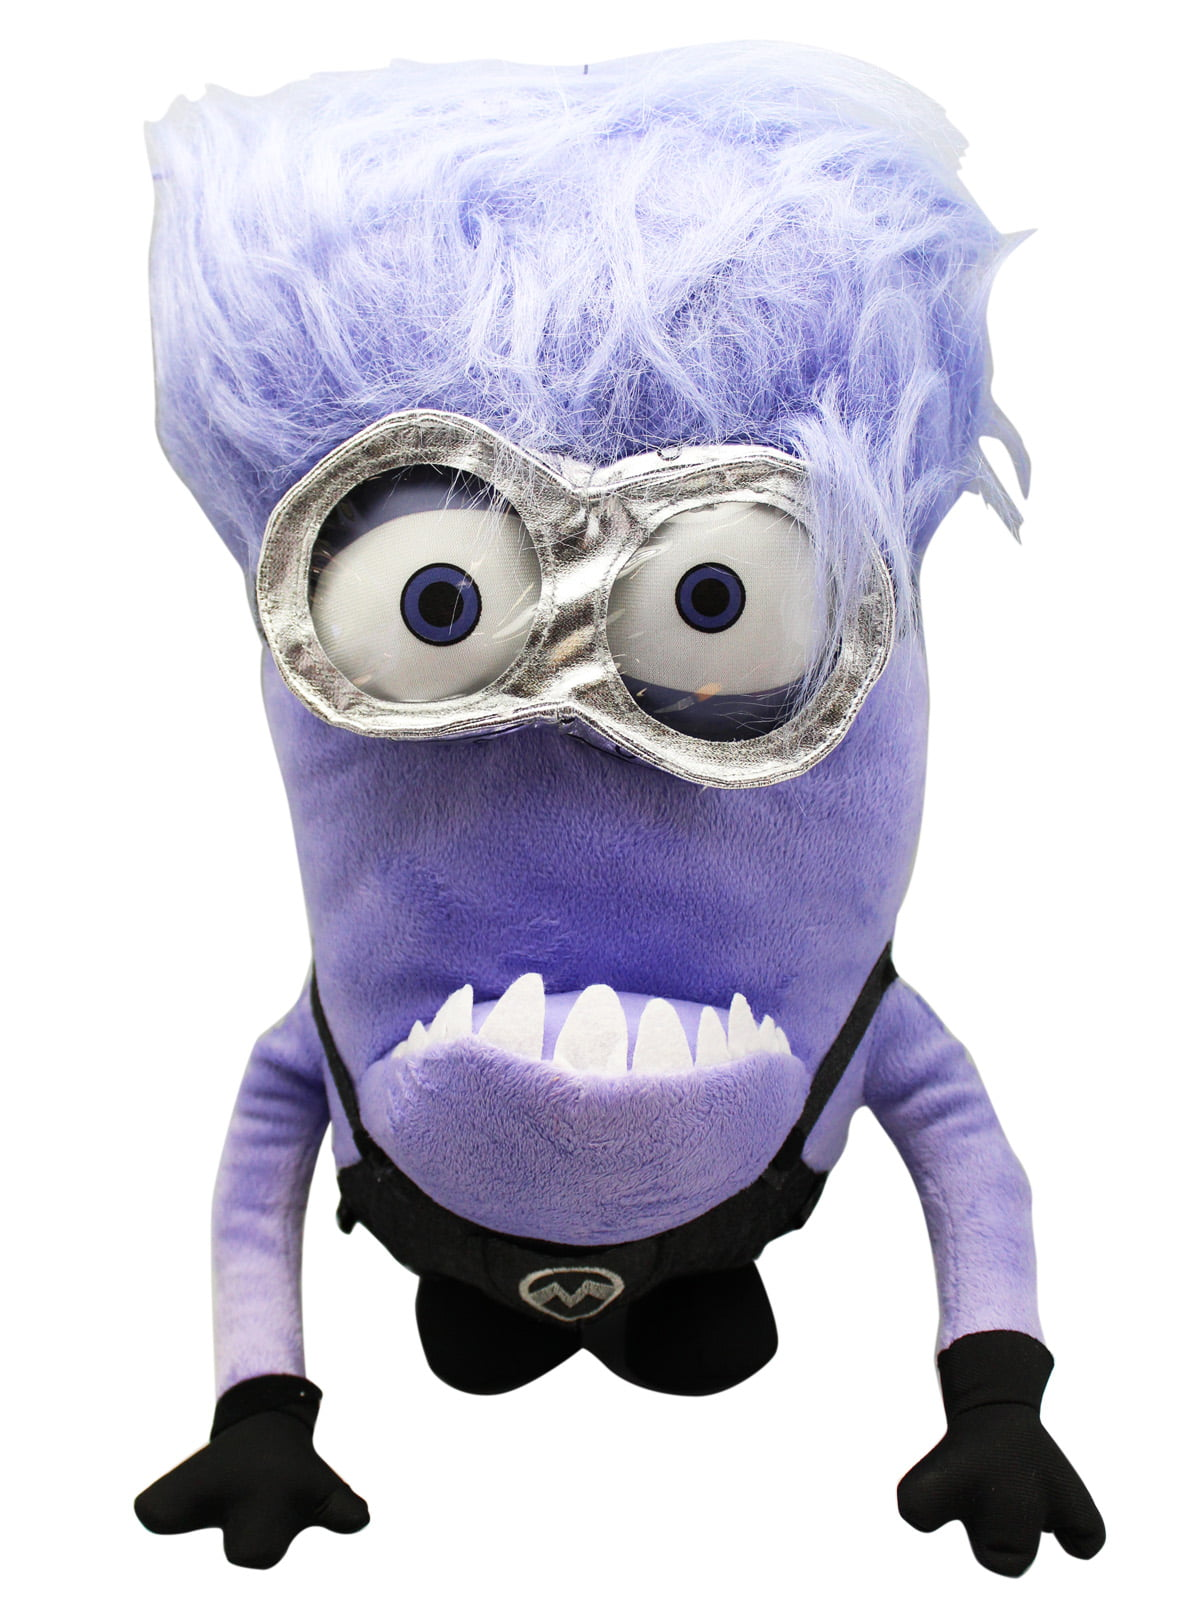 Despicable Me 2 Evil Minion Plush toy With Secret Zipper Pocket (15in) by